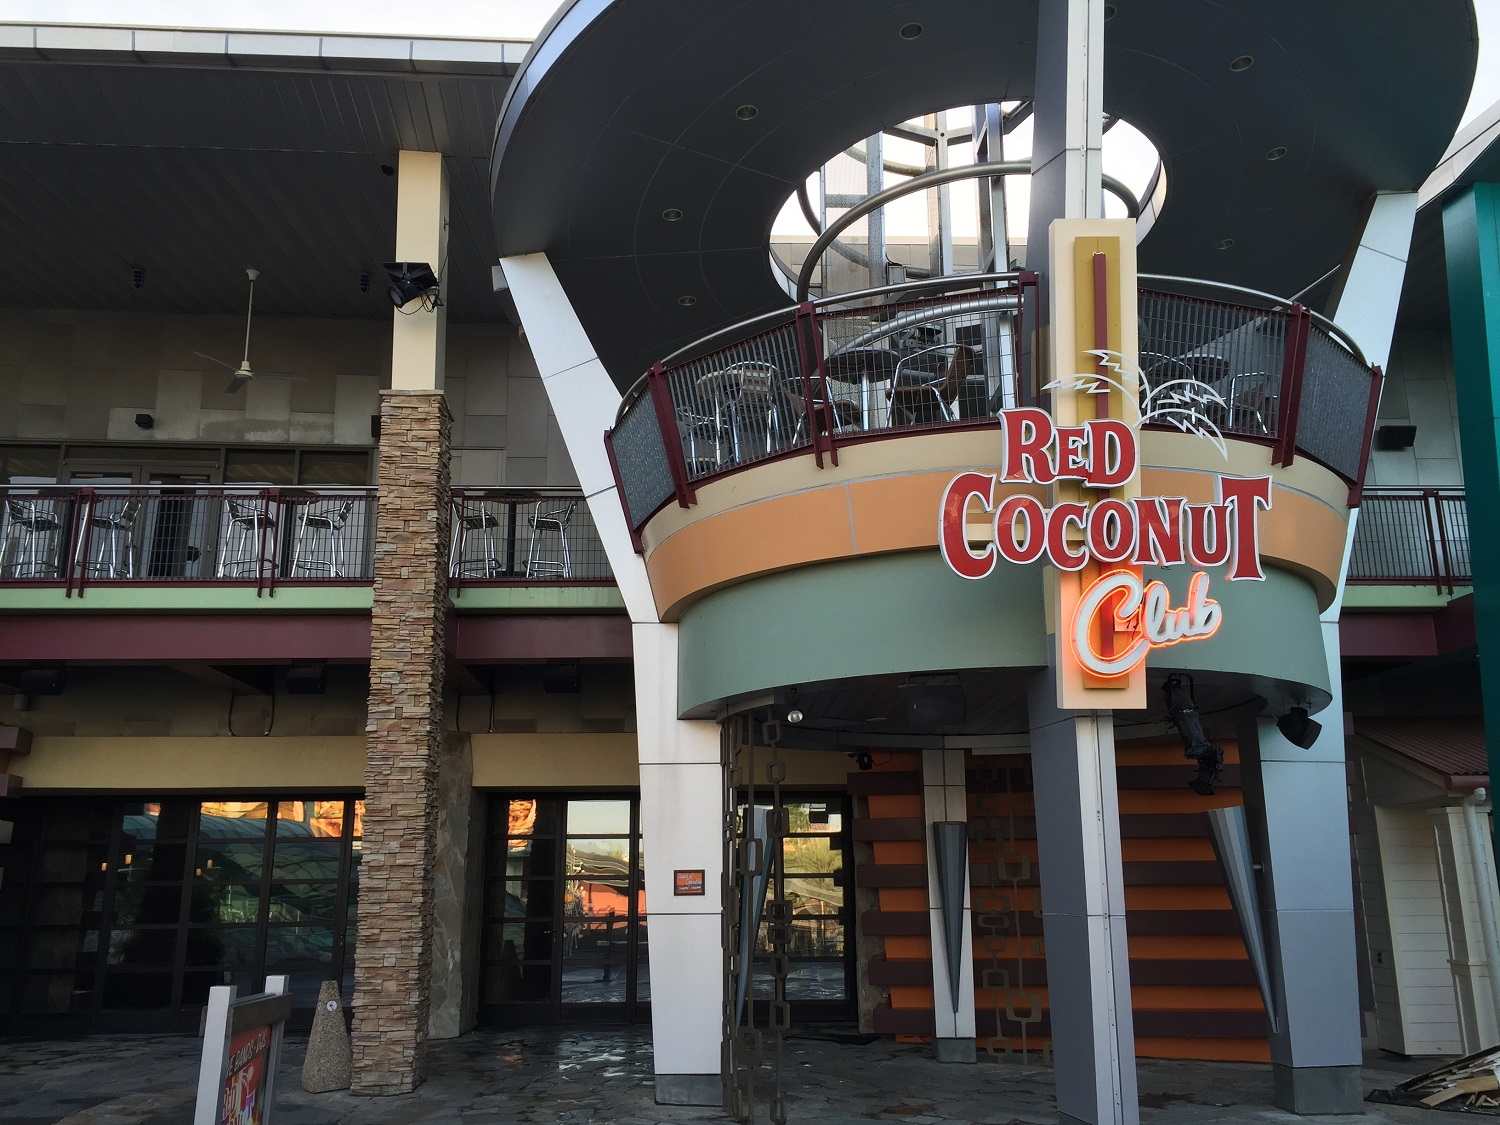 The Red Coconut Club has two levels.